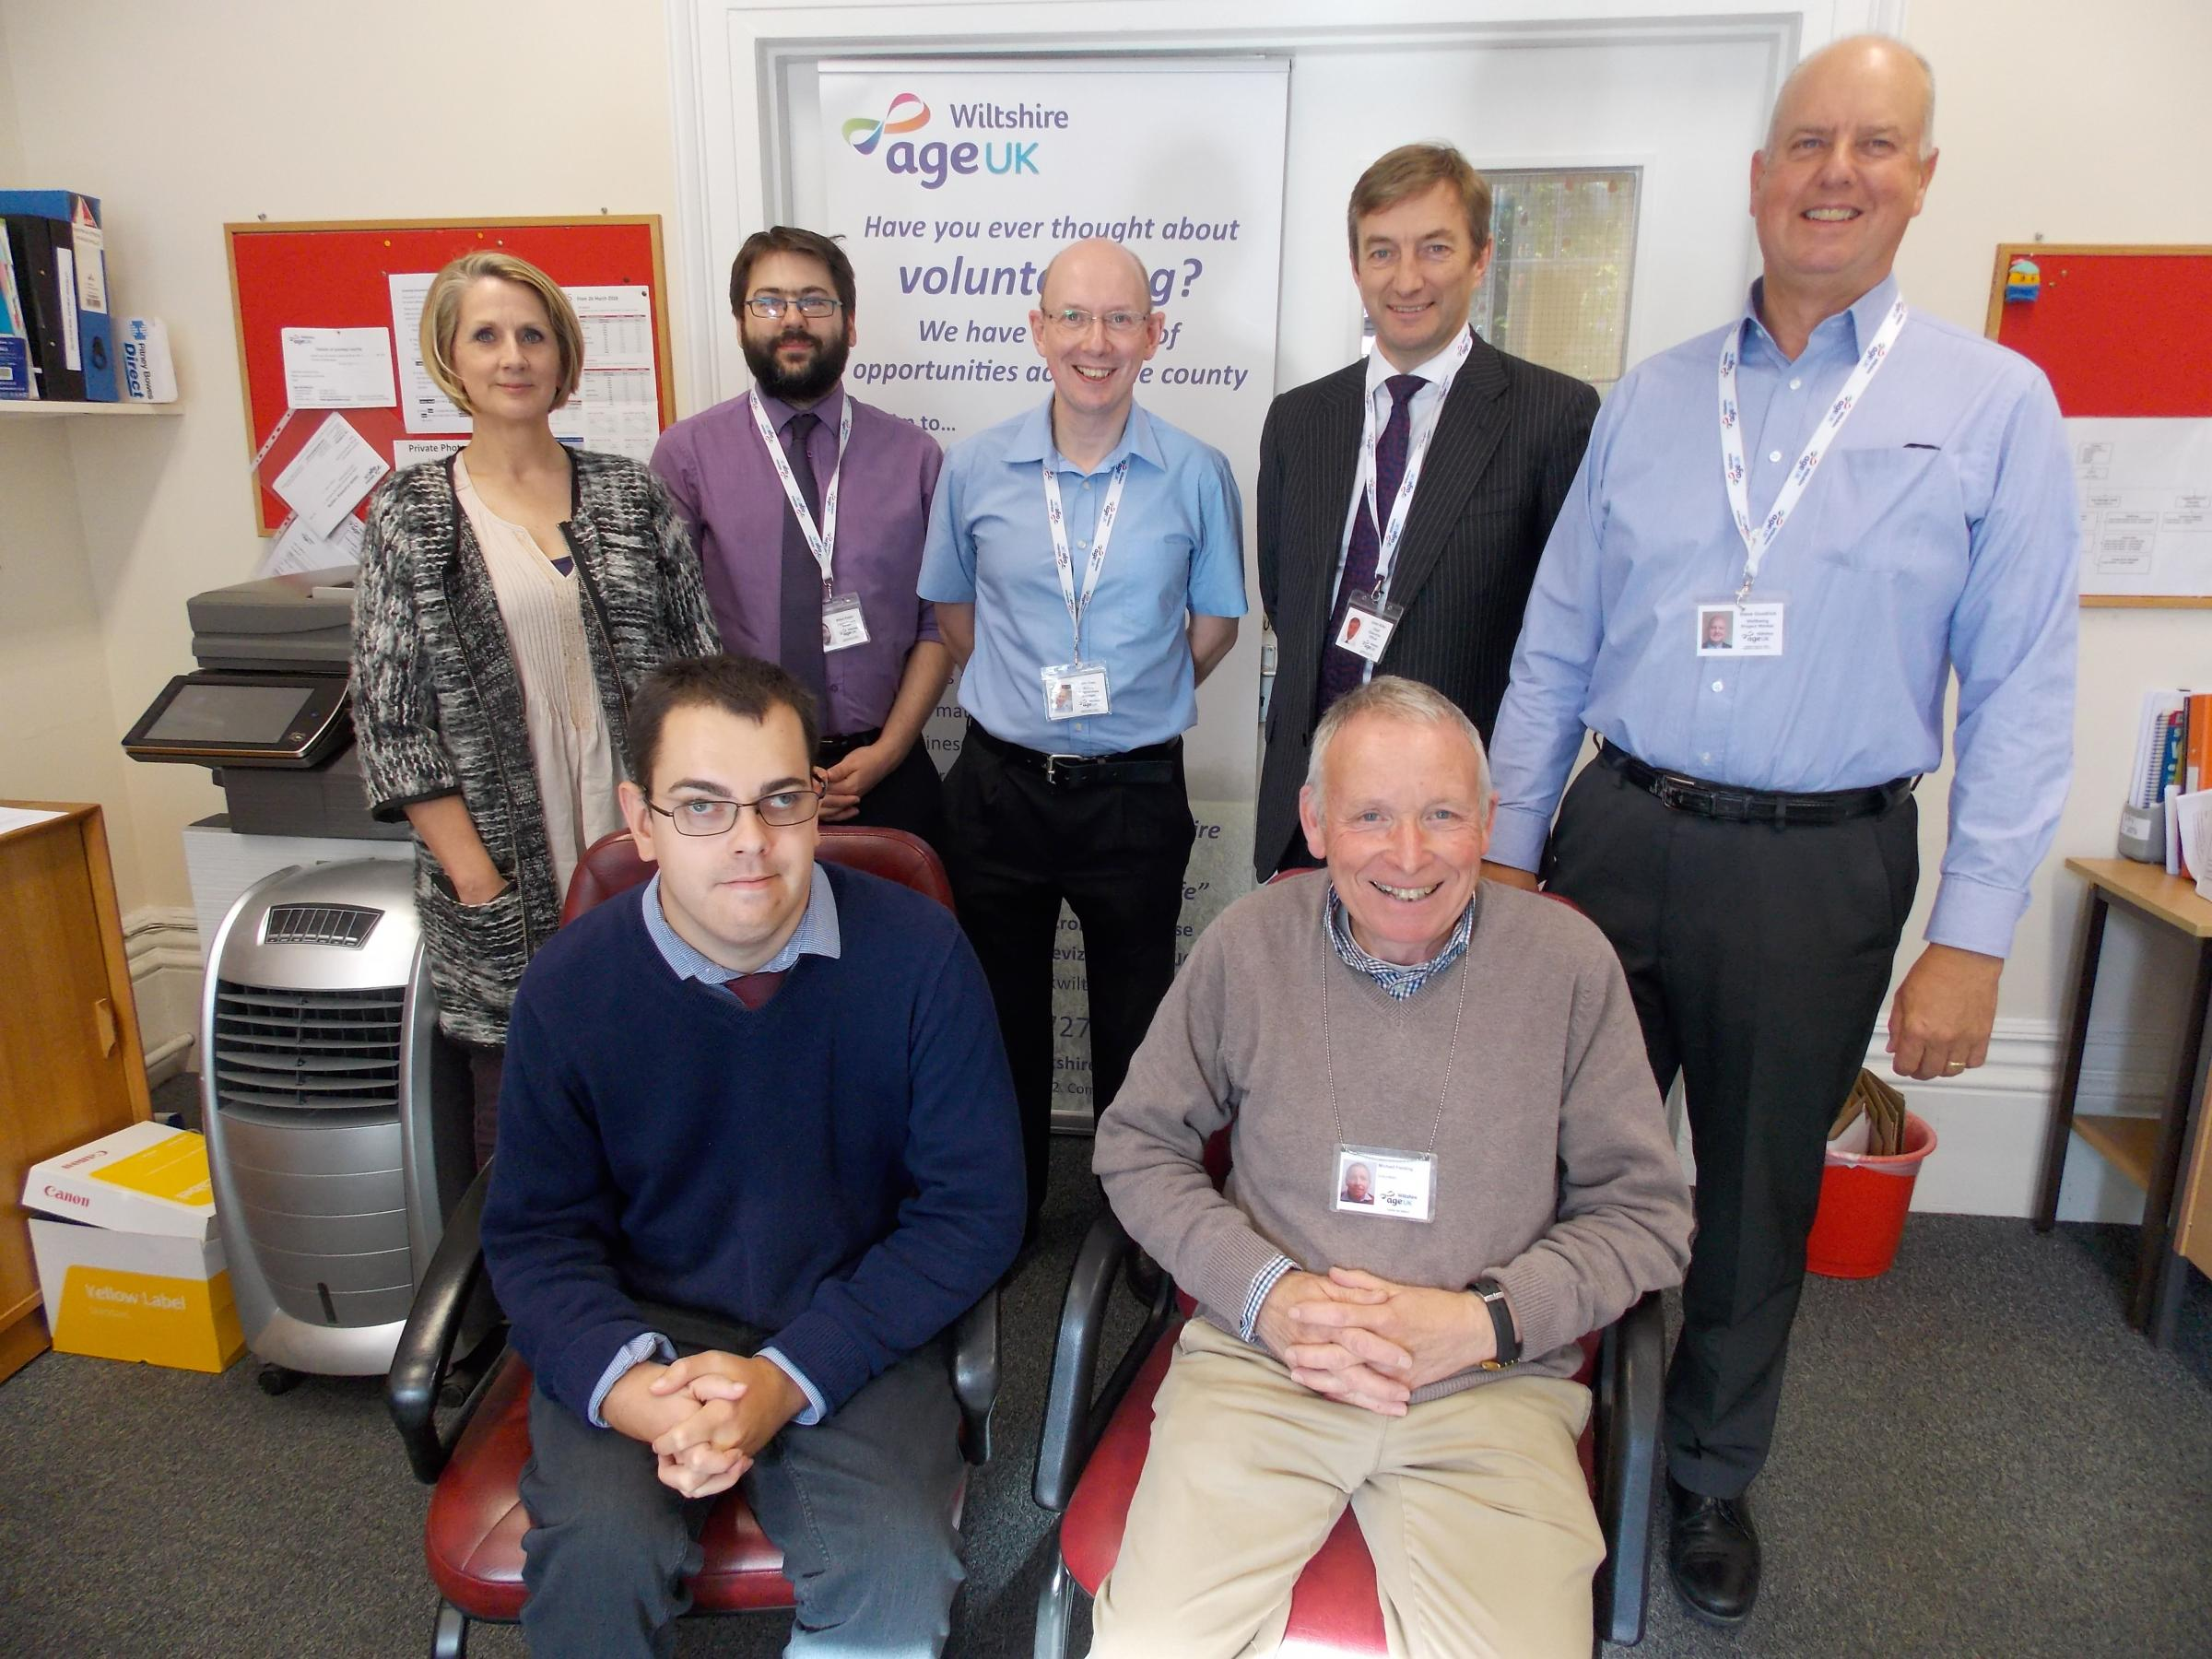 Age UK business support Jo Banks, back left, support services manager Elliot Potter, programmes manager John Truss, chief executive Julian Kirby, Wellbeing Project worker Steve Goodrick, volunteer business support Craig Izatt and volunteer Mike Fielding